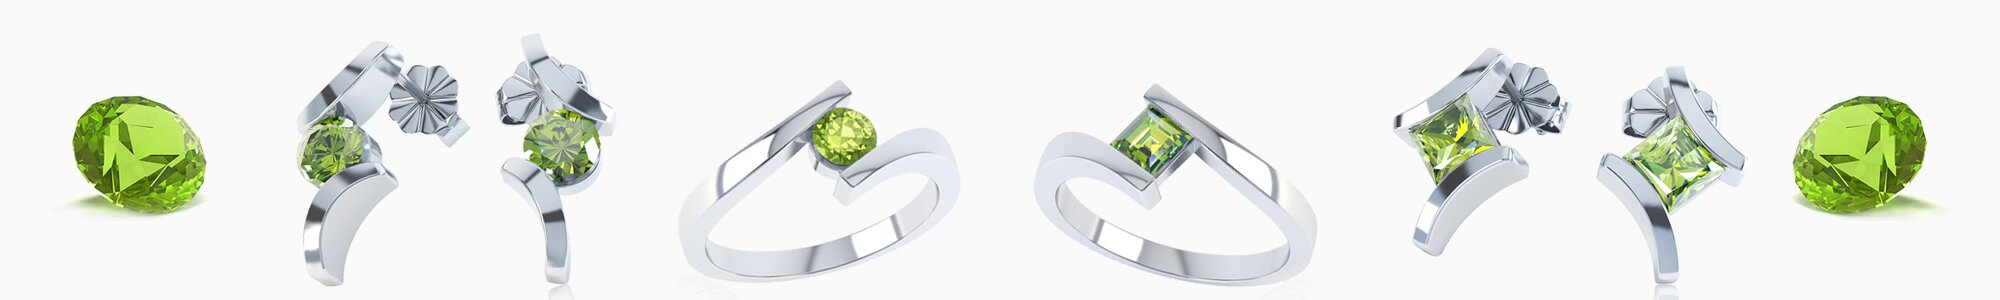 Peridot Jewelry - Peridot Necklaces, Earrings, Studs, Drops, Pendants, Engagement Rings and Bracelets